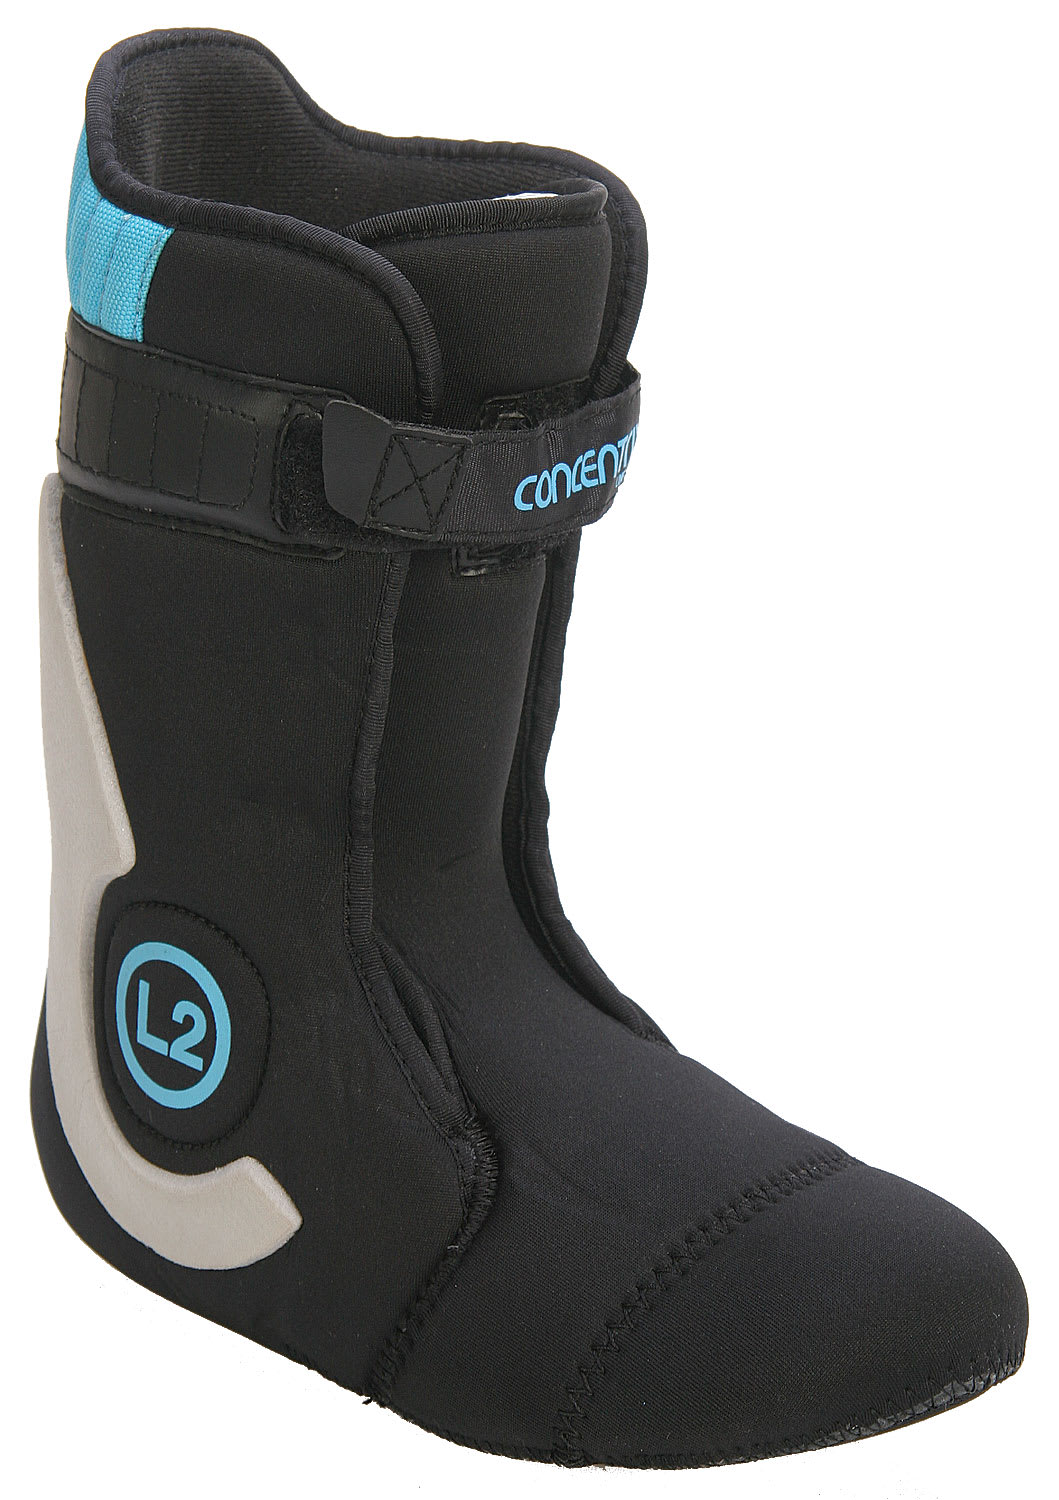 On Sale Forum Stampede Slr Snowboard Boots Womens Up To